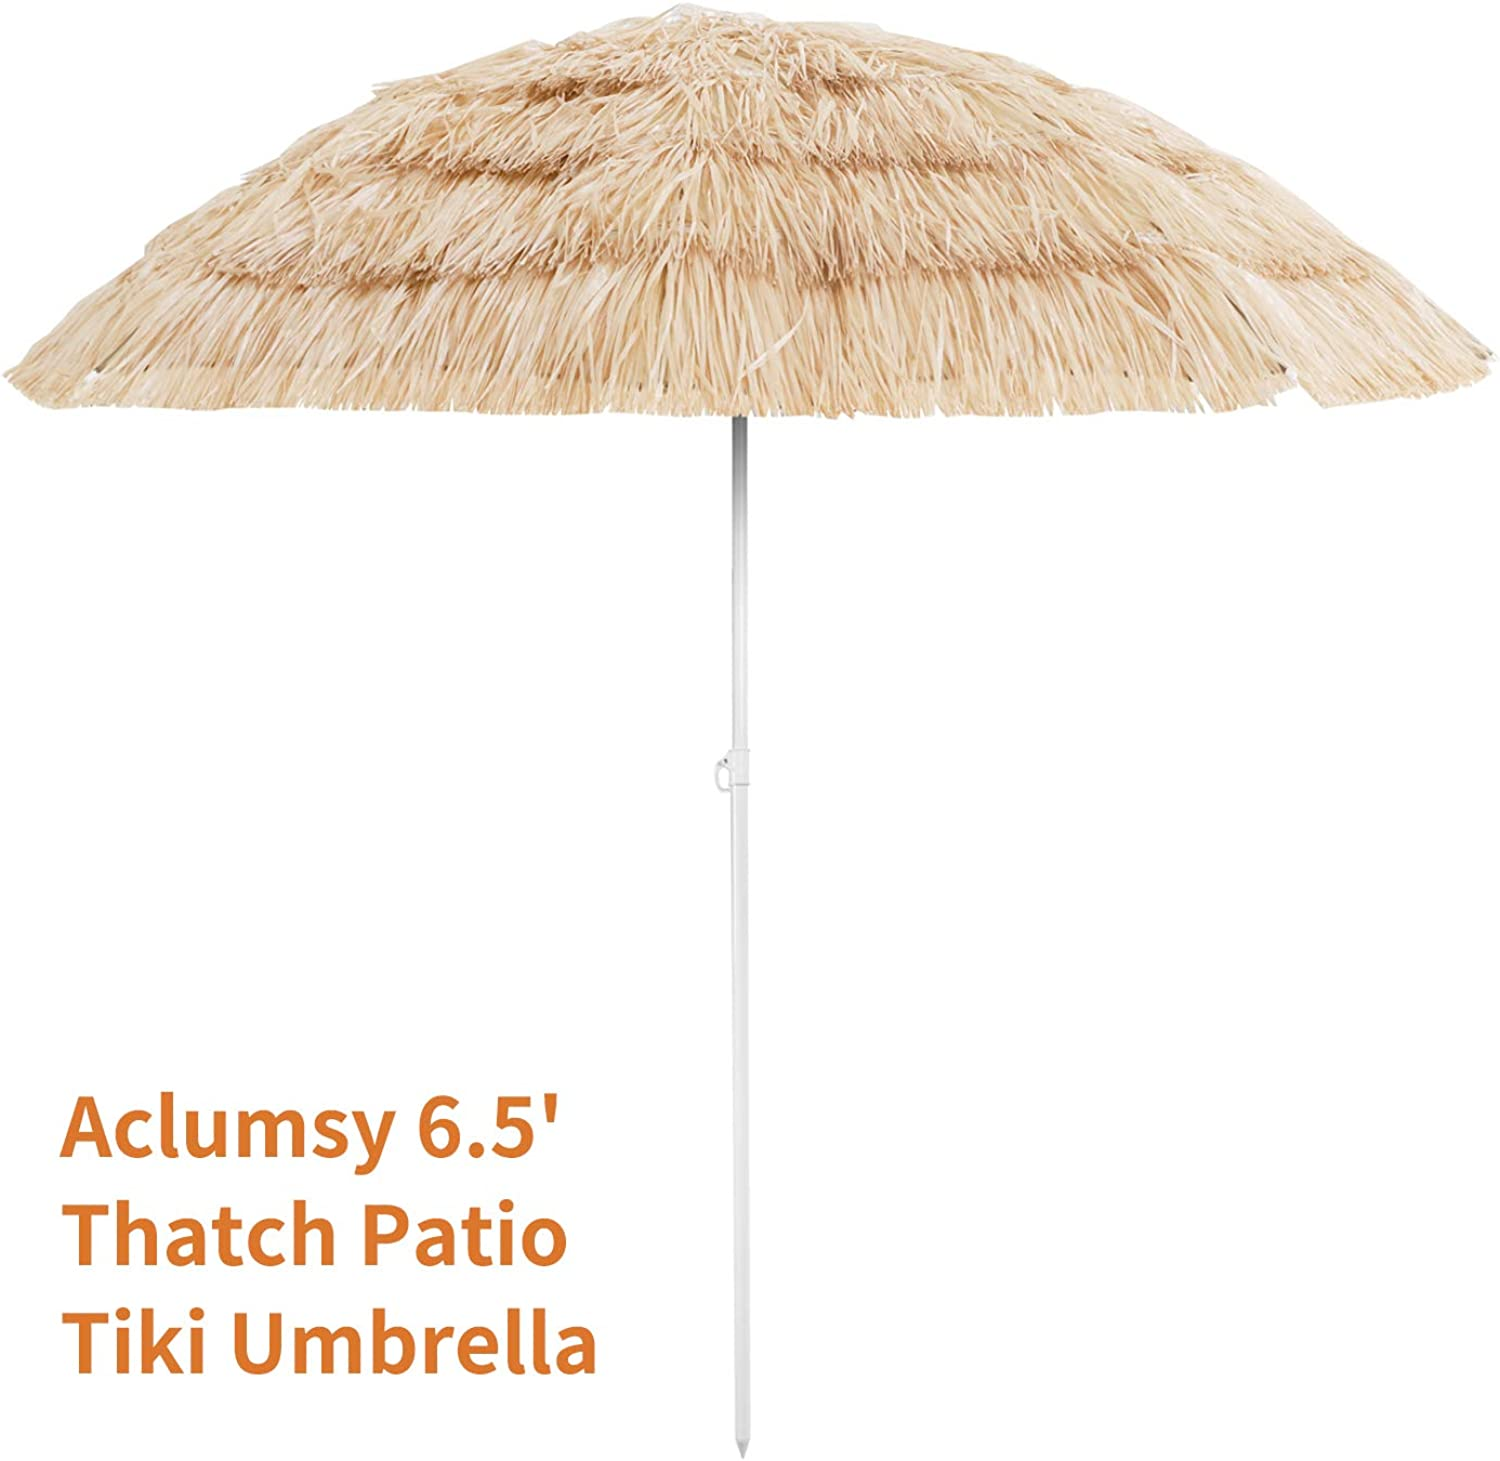 Aoxun 6.5 Thatch Patio Tiki Umbrella – Tropical Palapa Raffia Tiki Hut Hawaiian Hula Beach Umbrella NO Base